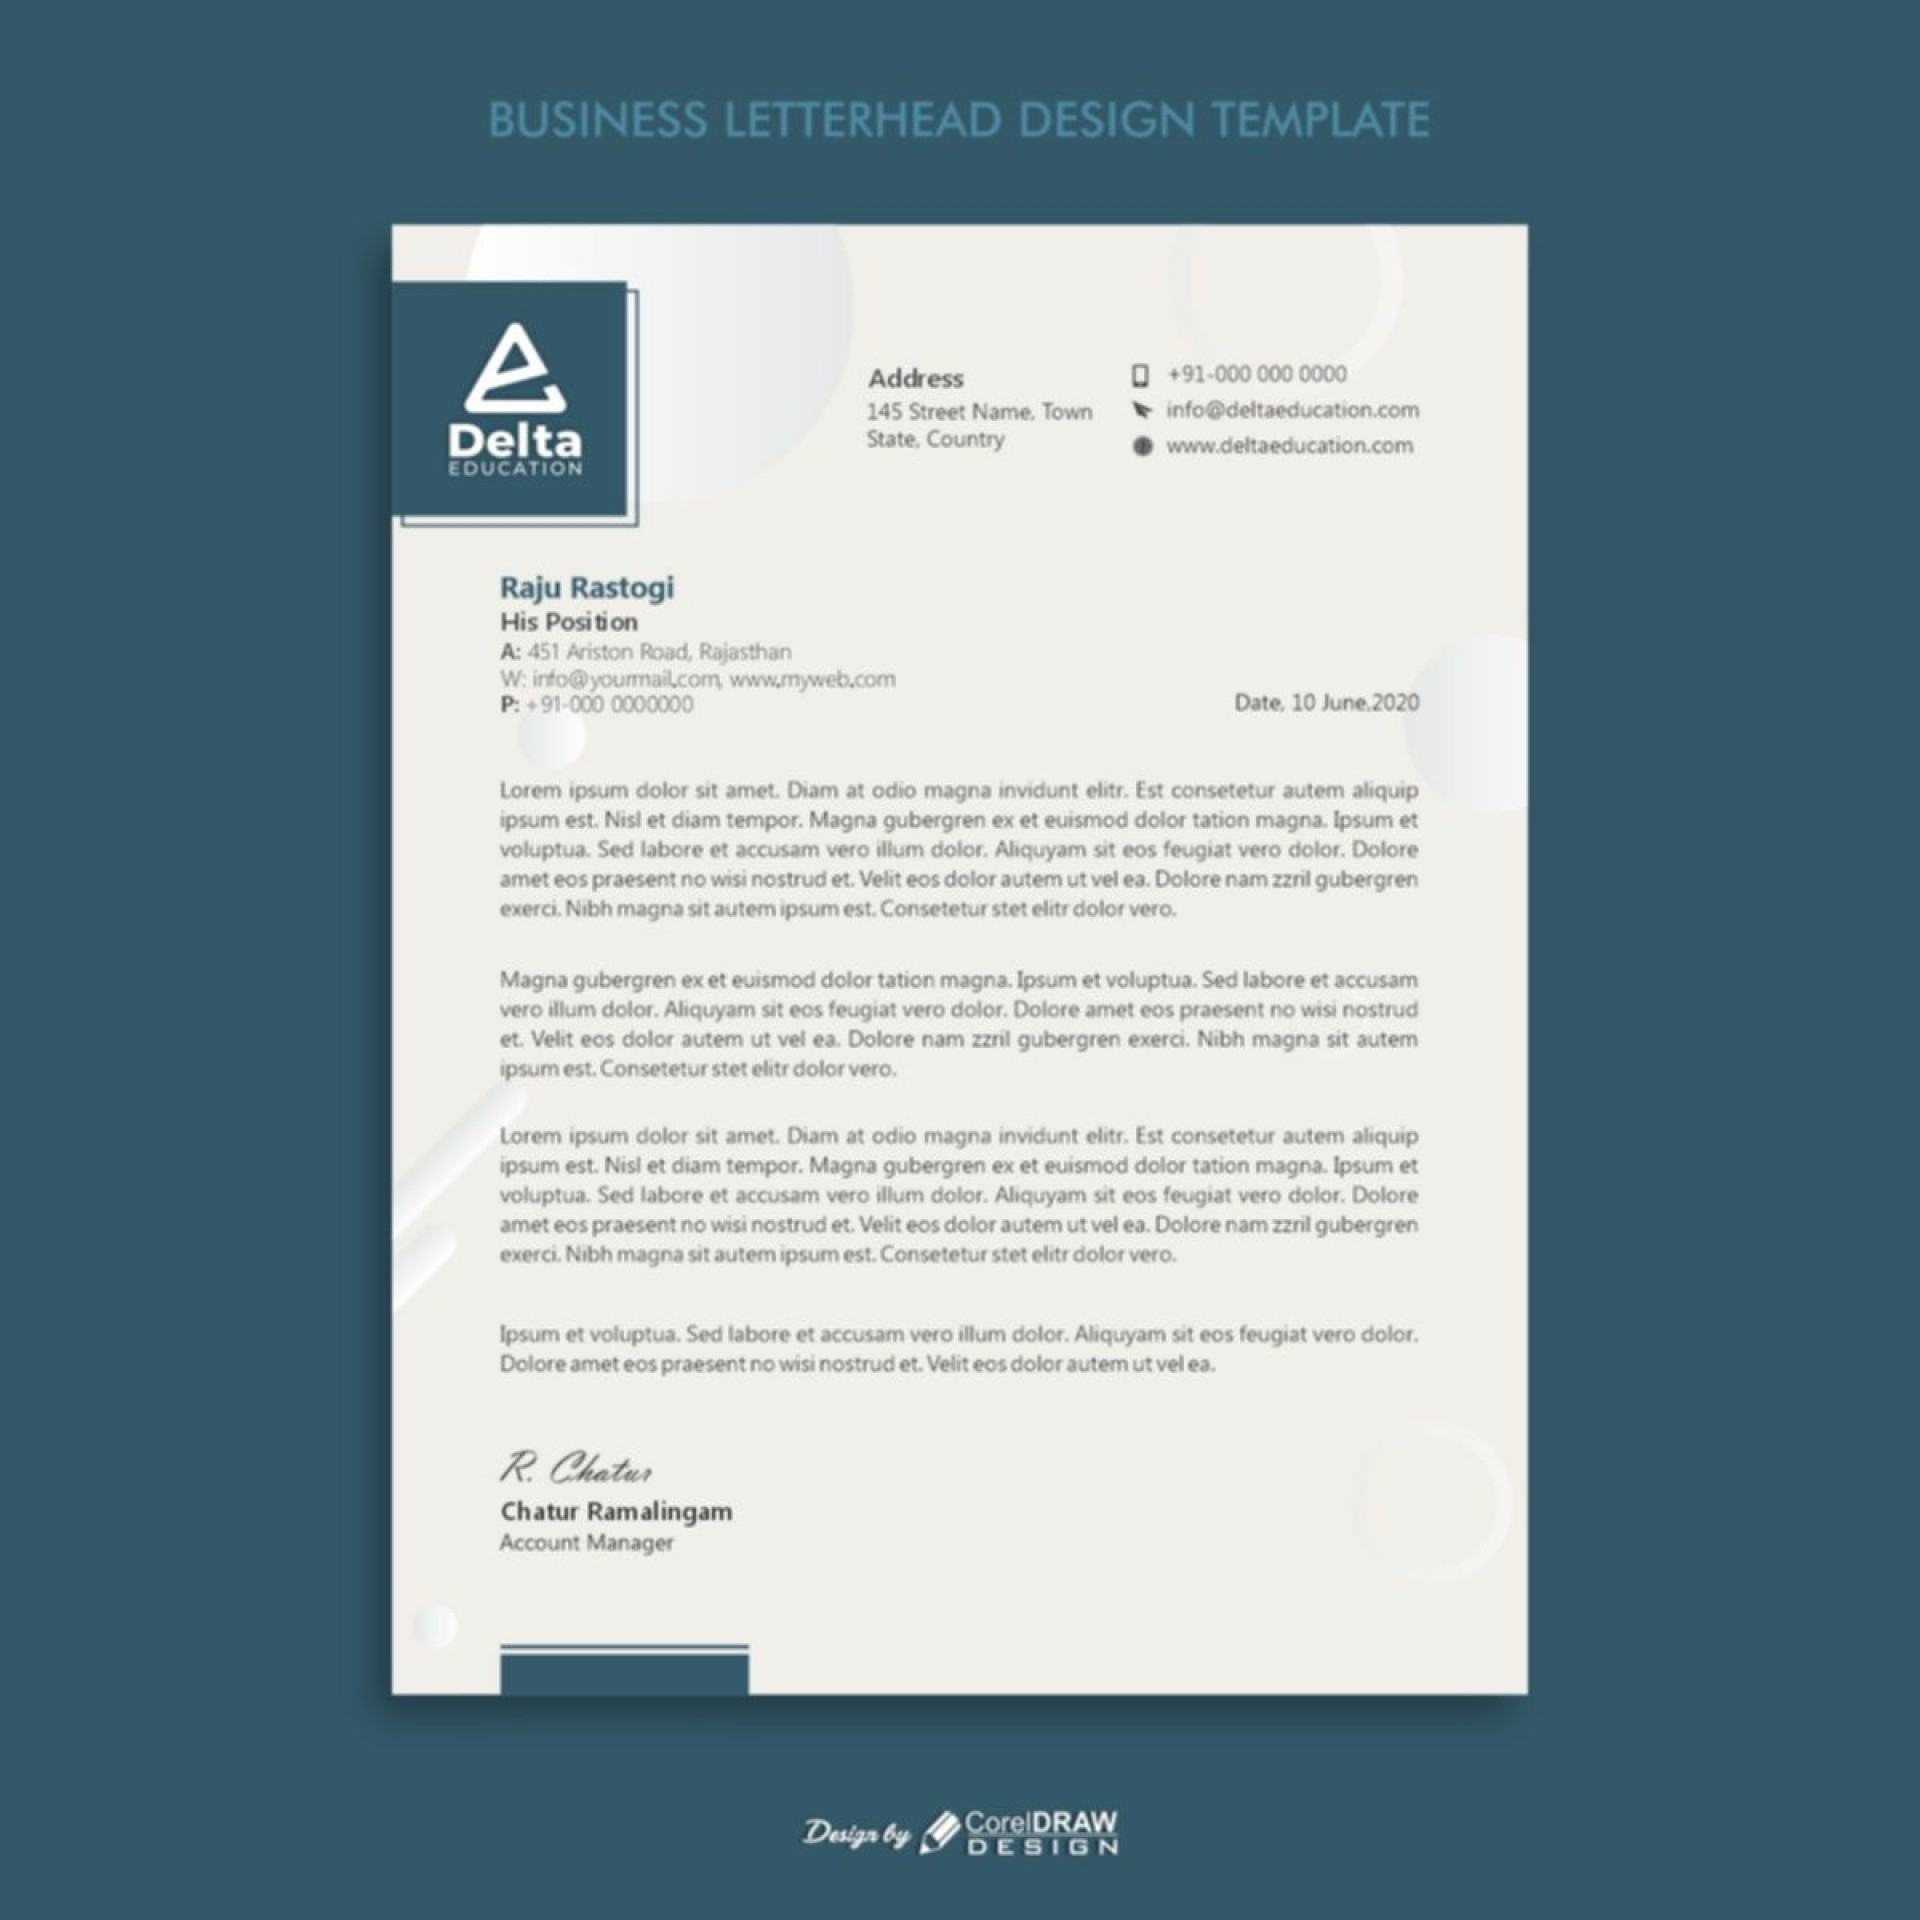 002 Formidable Letterhead Template Free Download Cdr Sample 1920